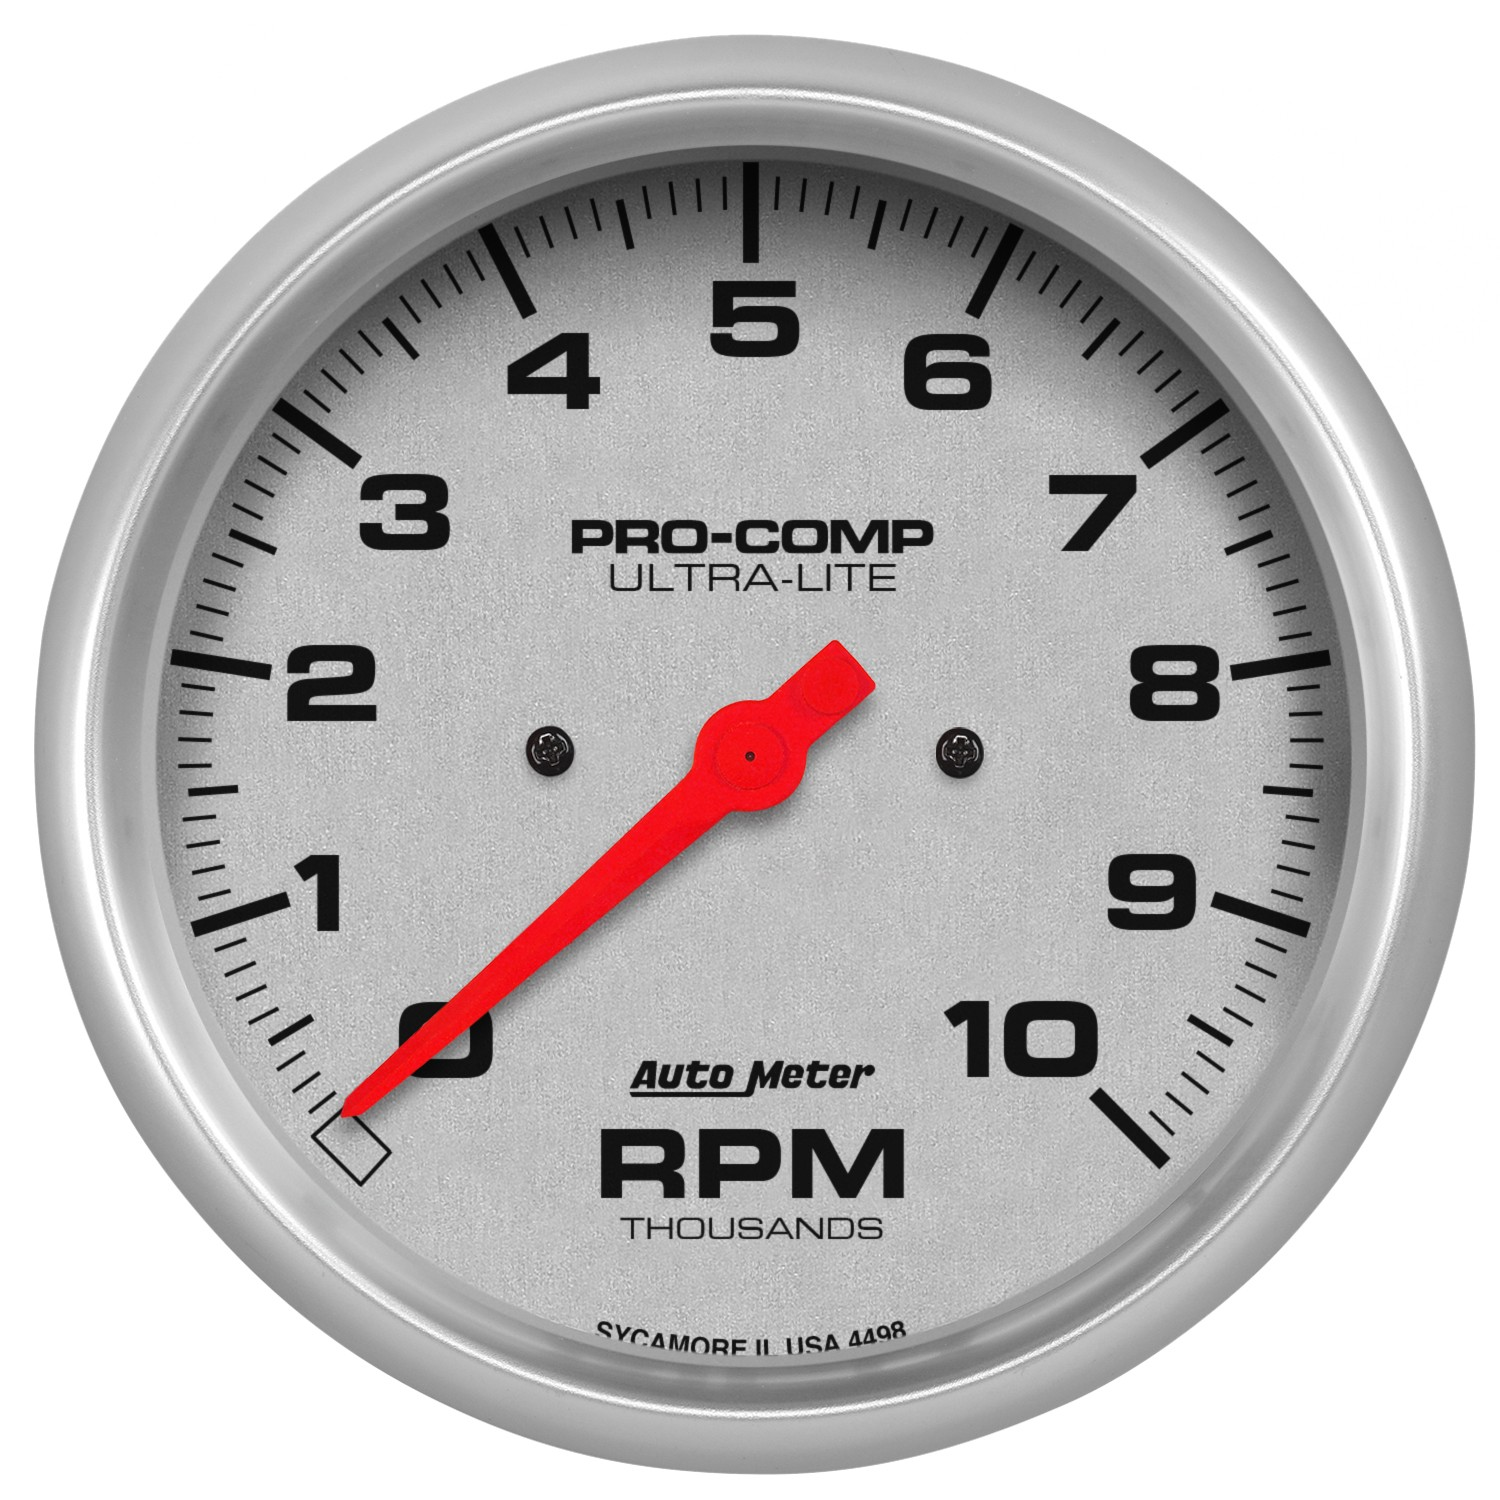 "Auto Meter 4498 Gauge Tachometer 5/"" 10,000 RPM In-Dash Ultra-Lite"